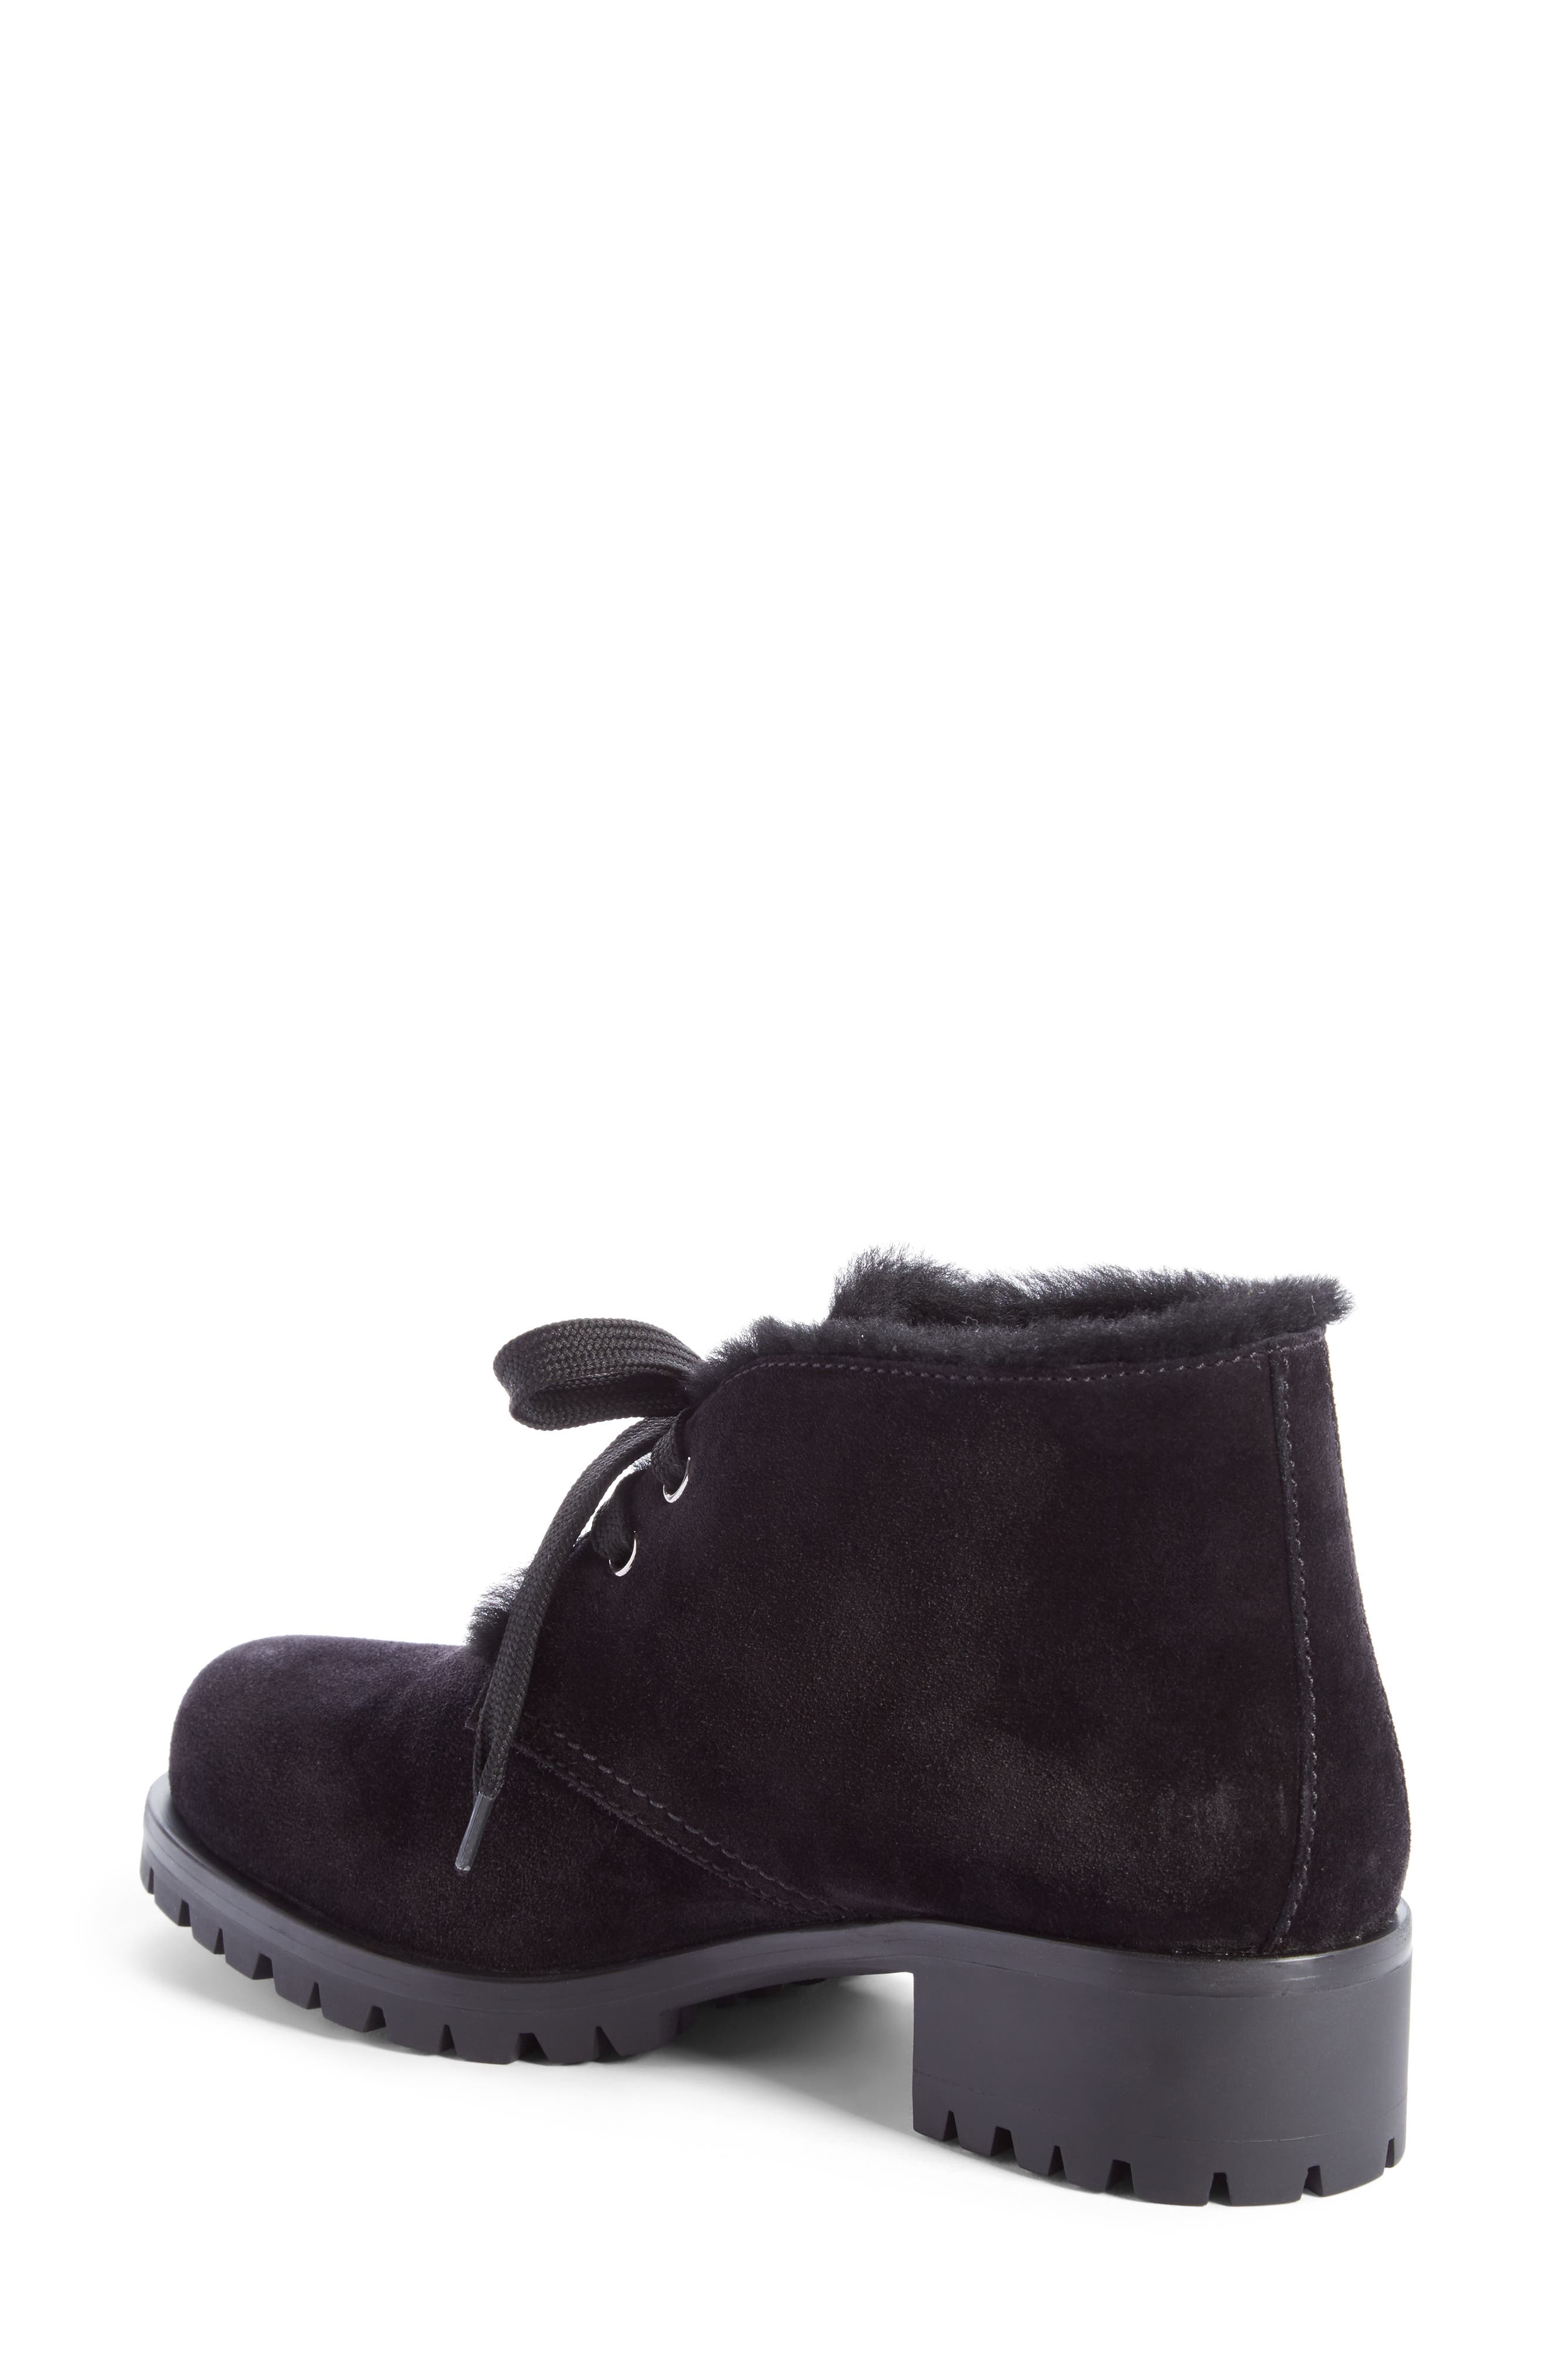 Genuine Shearling Lined Bootie,                             Alternate thumbnail 2, color,                             001